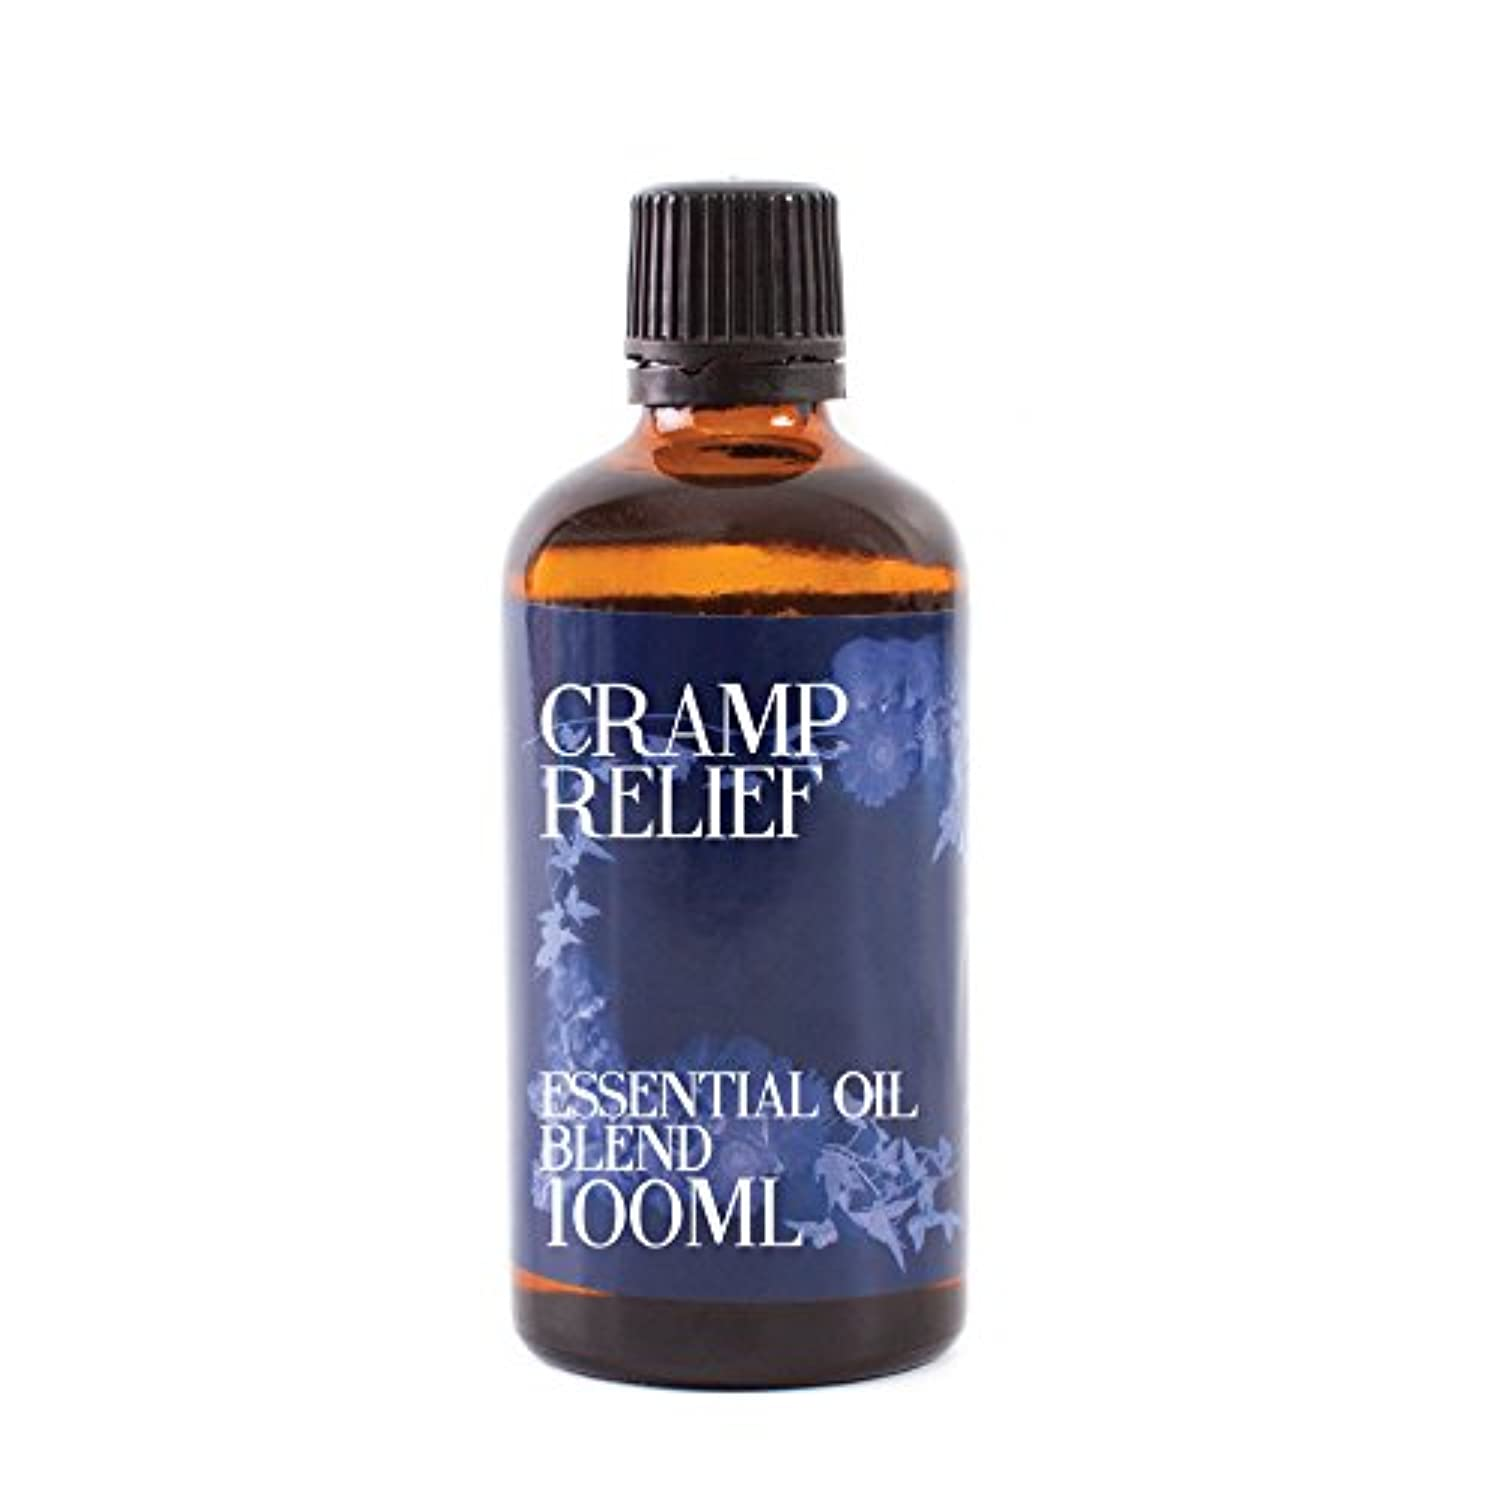 Mystix London | Cramp Relief Essential Oil Blend - 100ml - 100% Pure